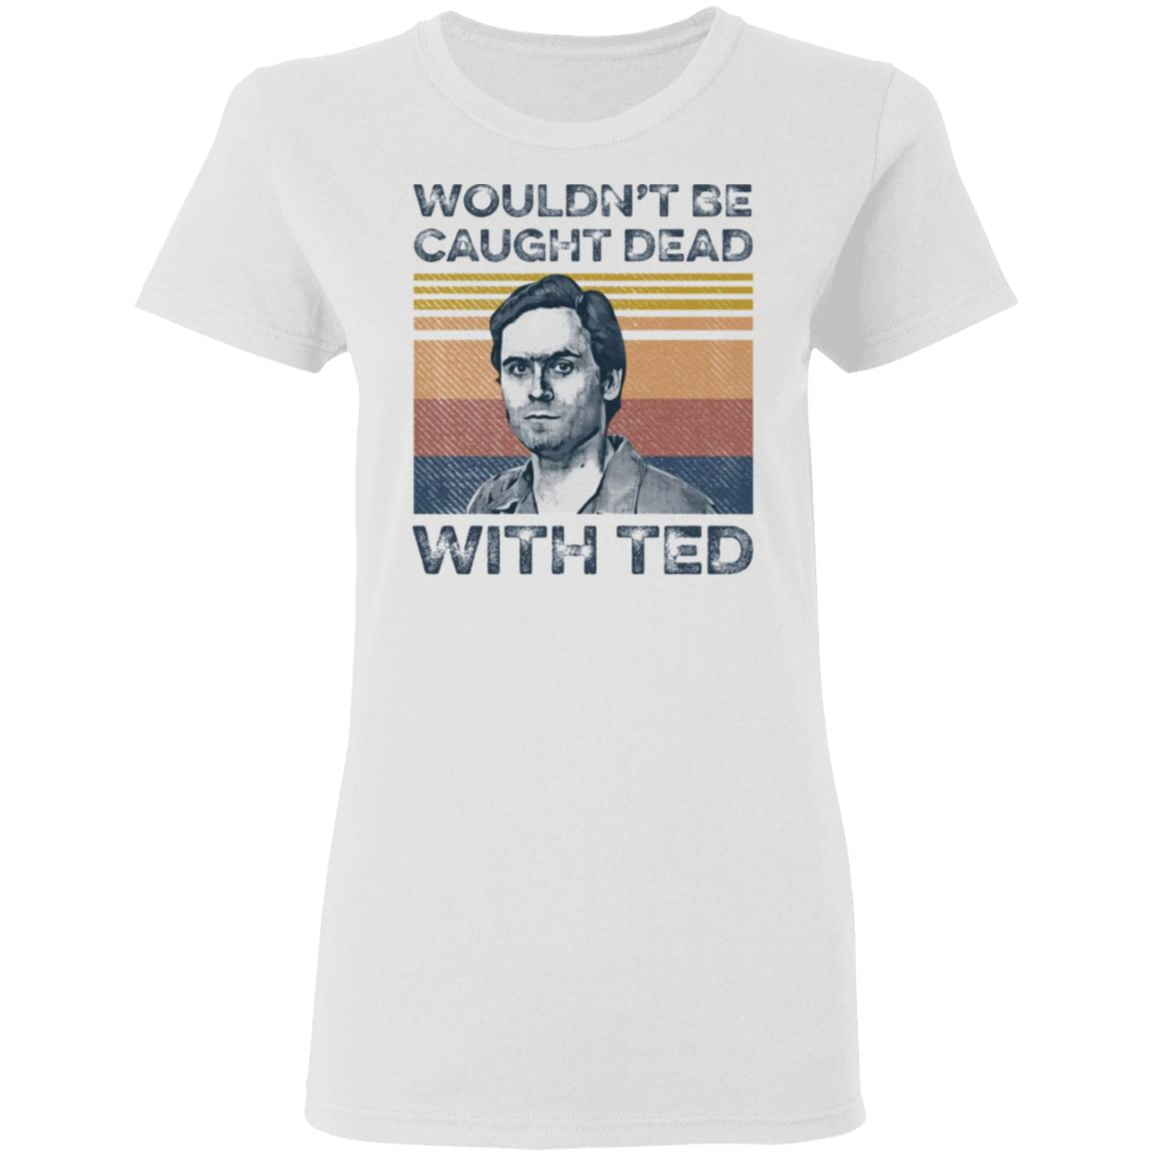 Ted Bundy wouldn't be caught dead with ted t shirt